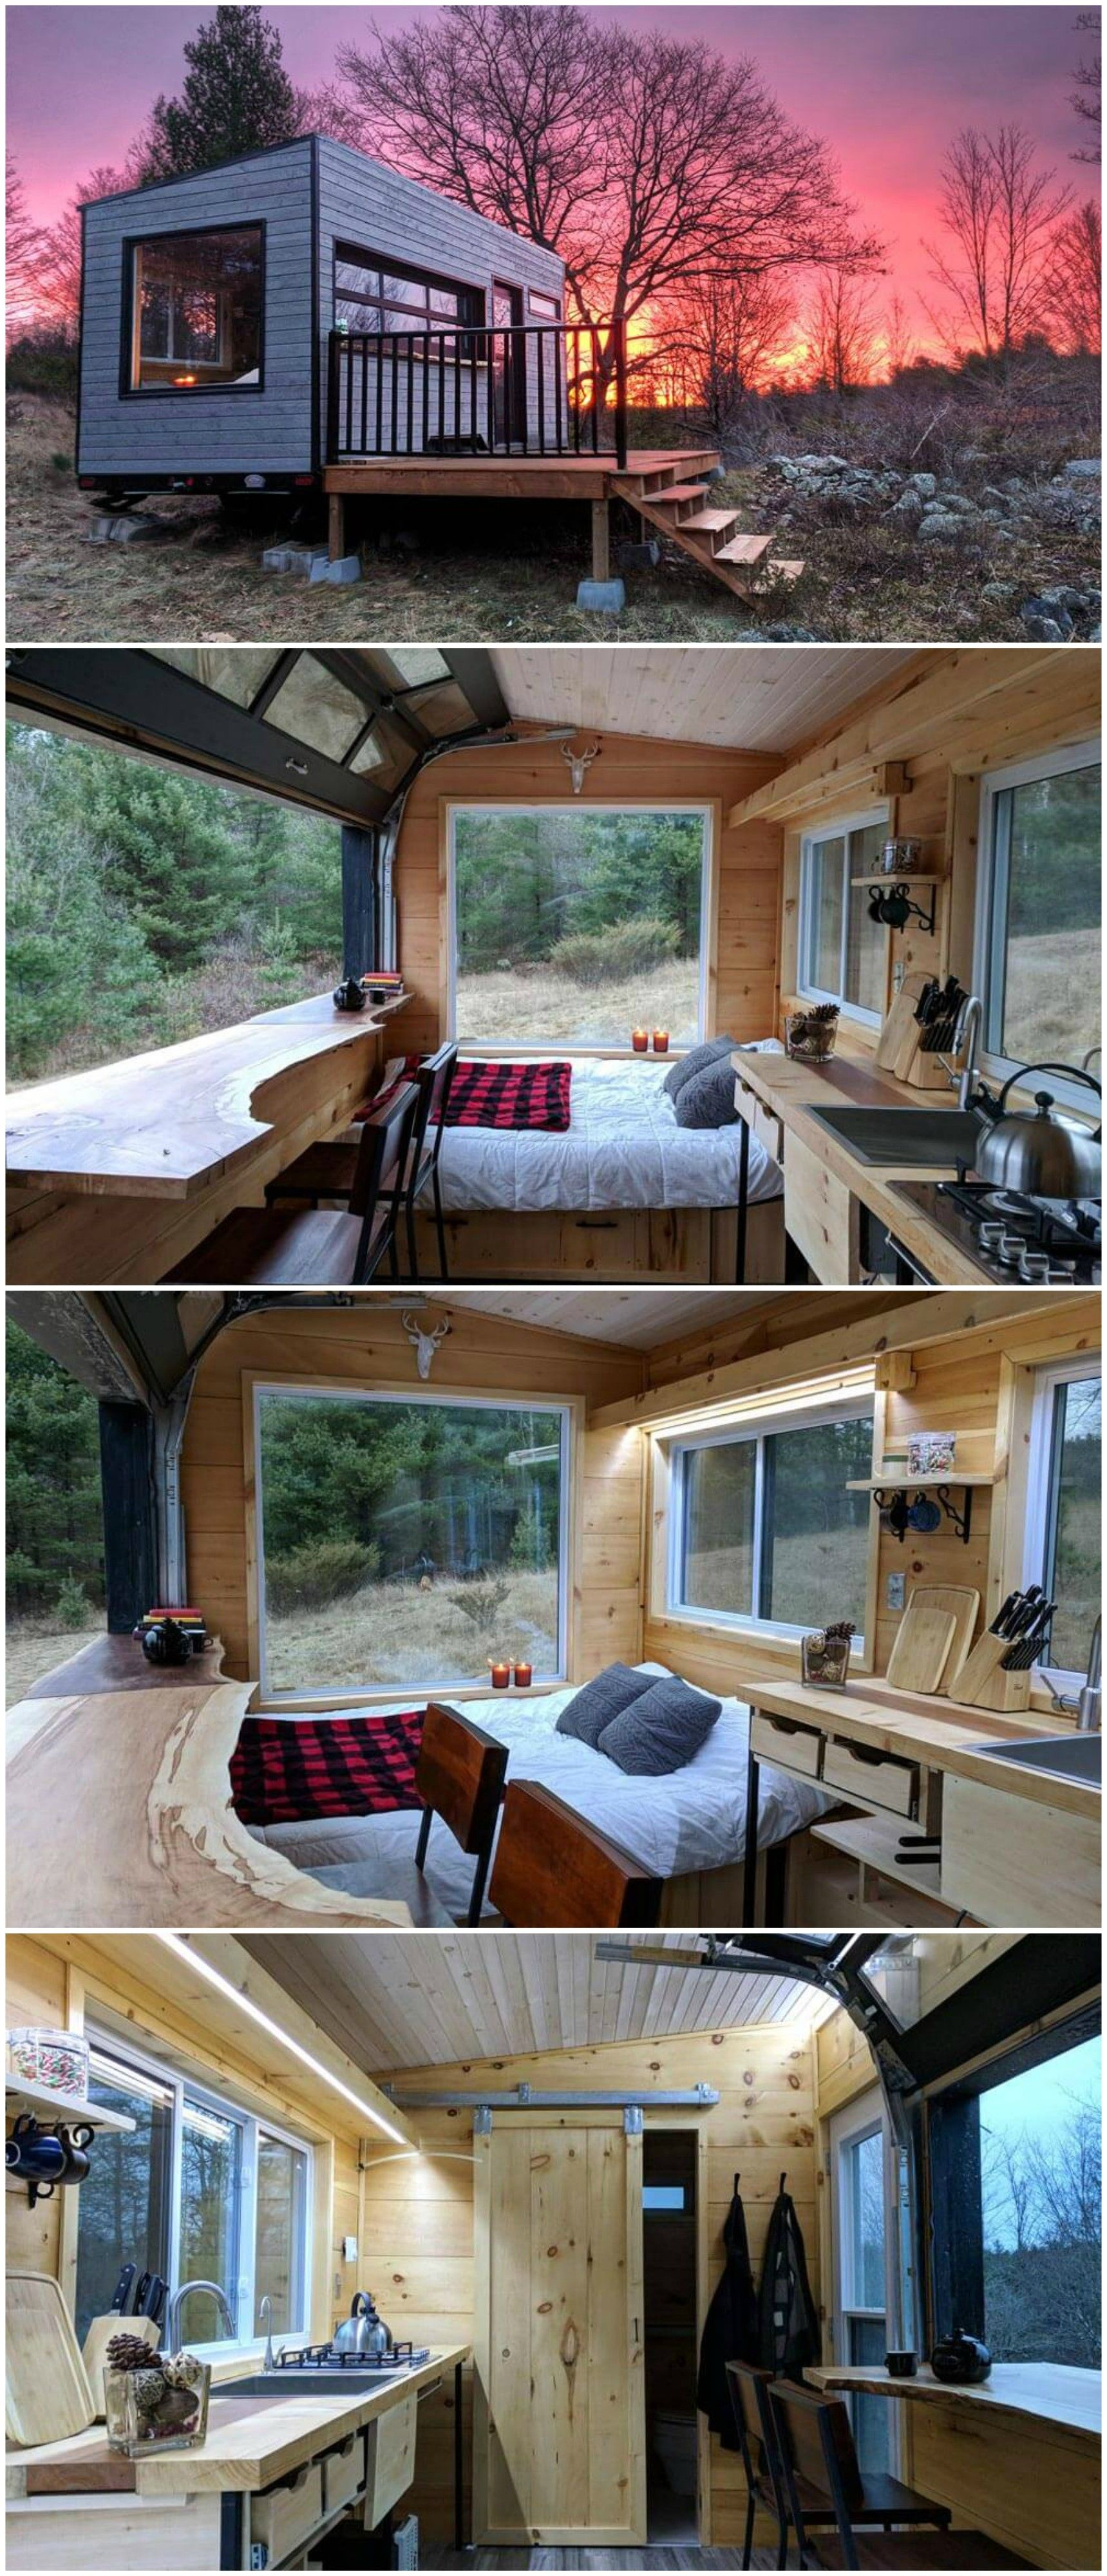 Mason Is A Stunning Off Grid Solar Powered Cabin Available For Nightly Rental Through Cabinscape With Its Panor Best Tiny House Small House Plans Small House